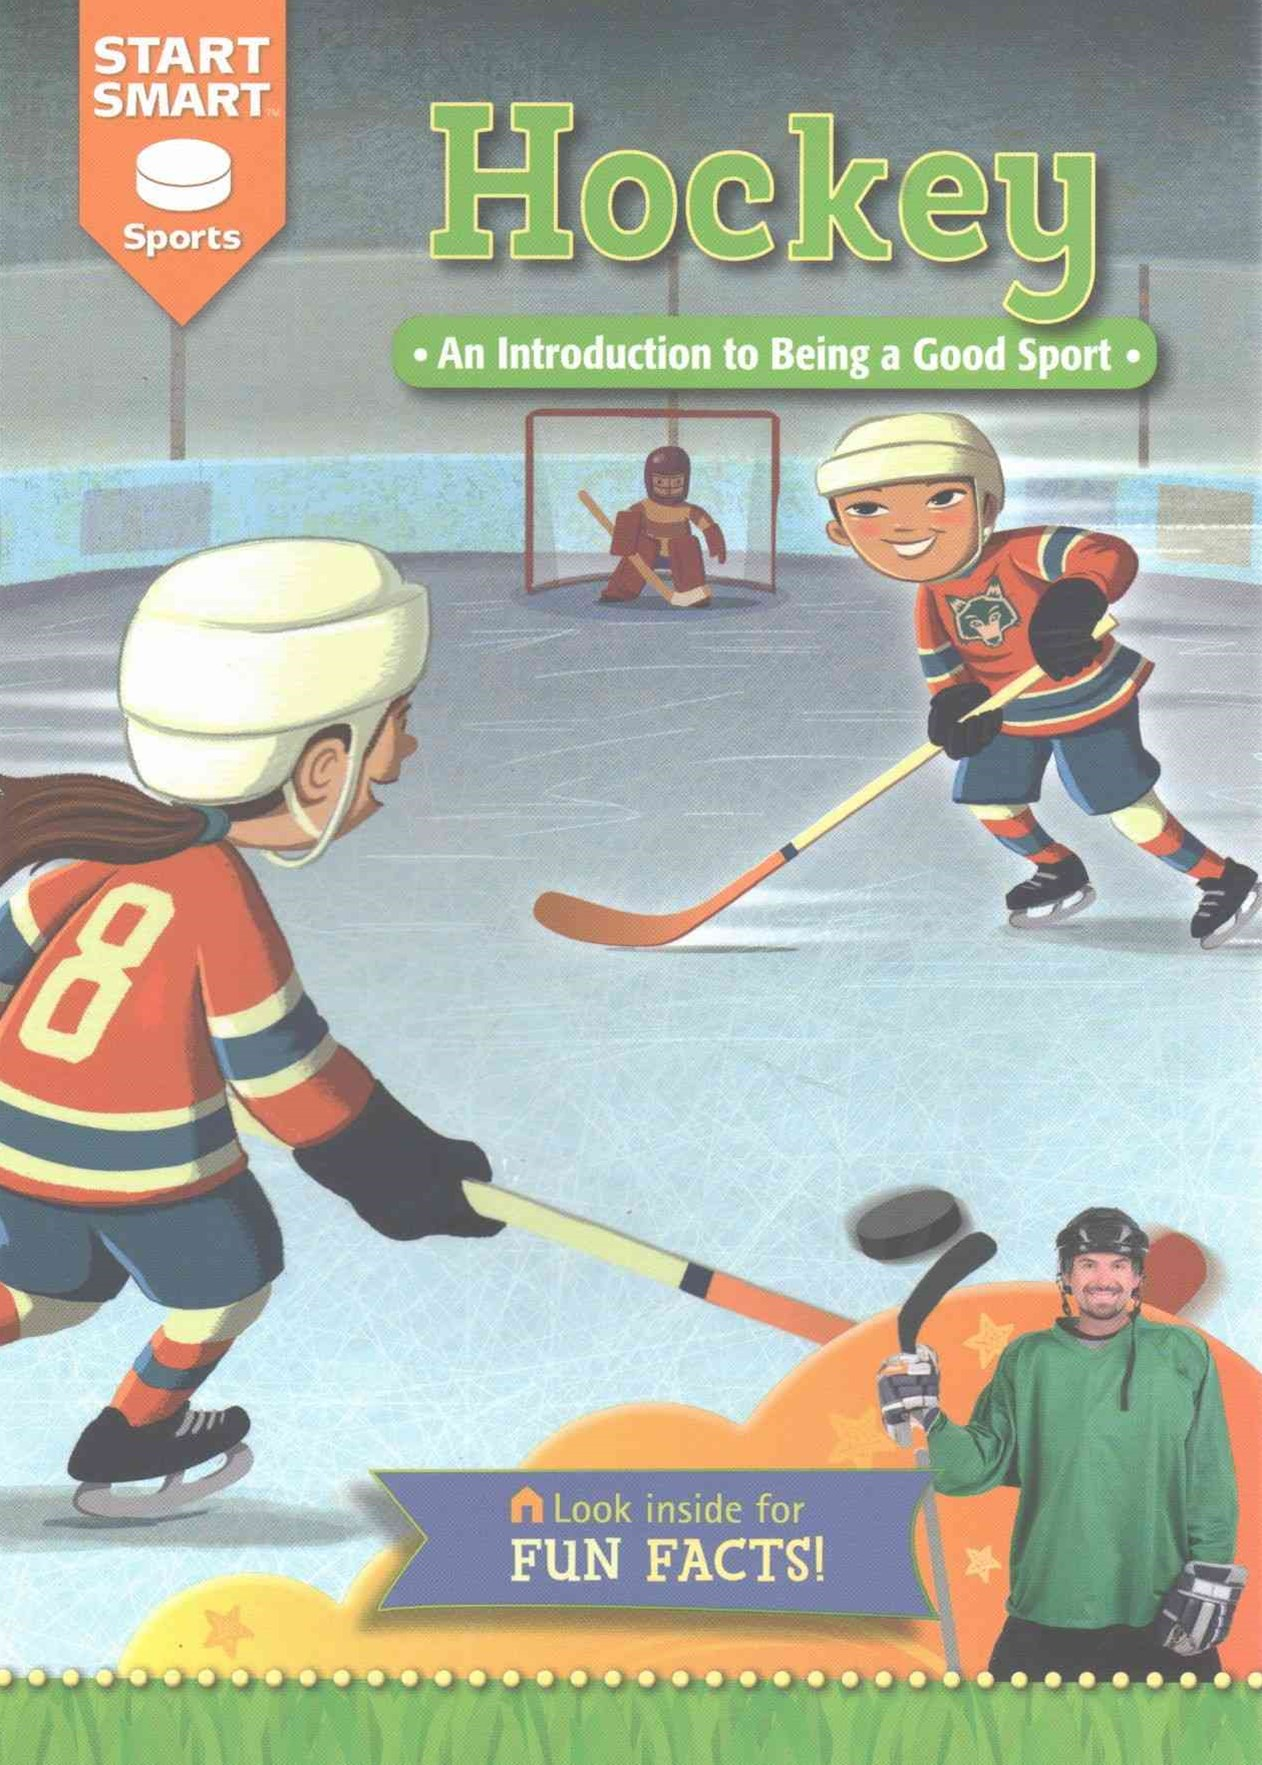 Hockey - An Introduction to Being a Good Sport - Start Smart Sports